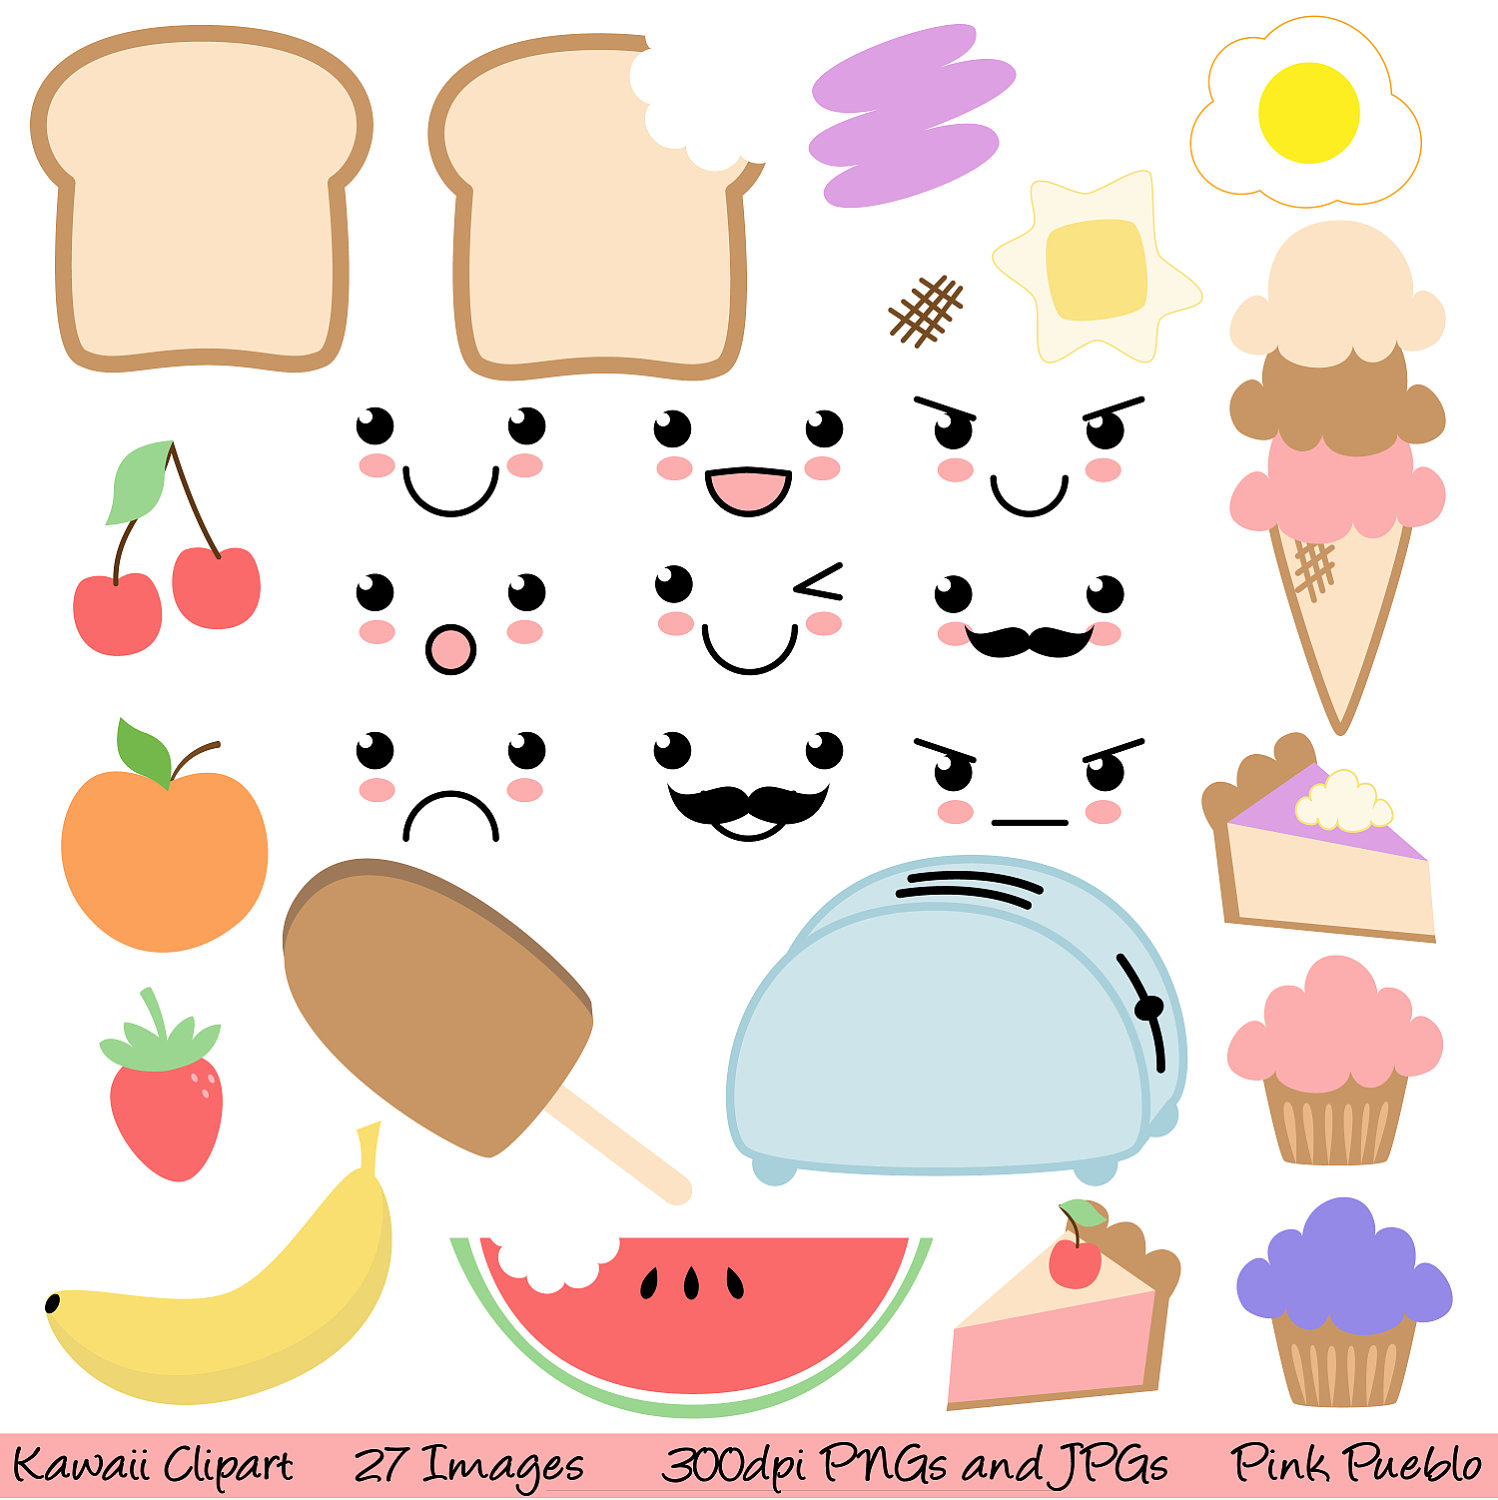 Kawaii clipart svg freeuse stock Free Cute Kawaii Cliparts, Download Free Clip Art, Free Clip Art on ... svg freeuse stock